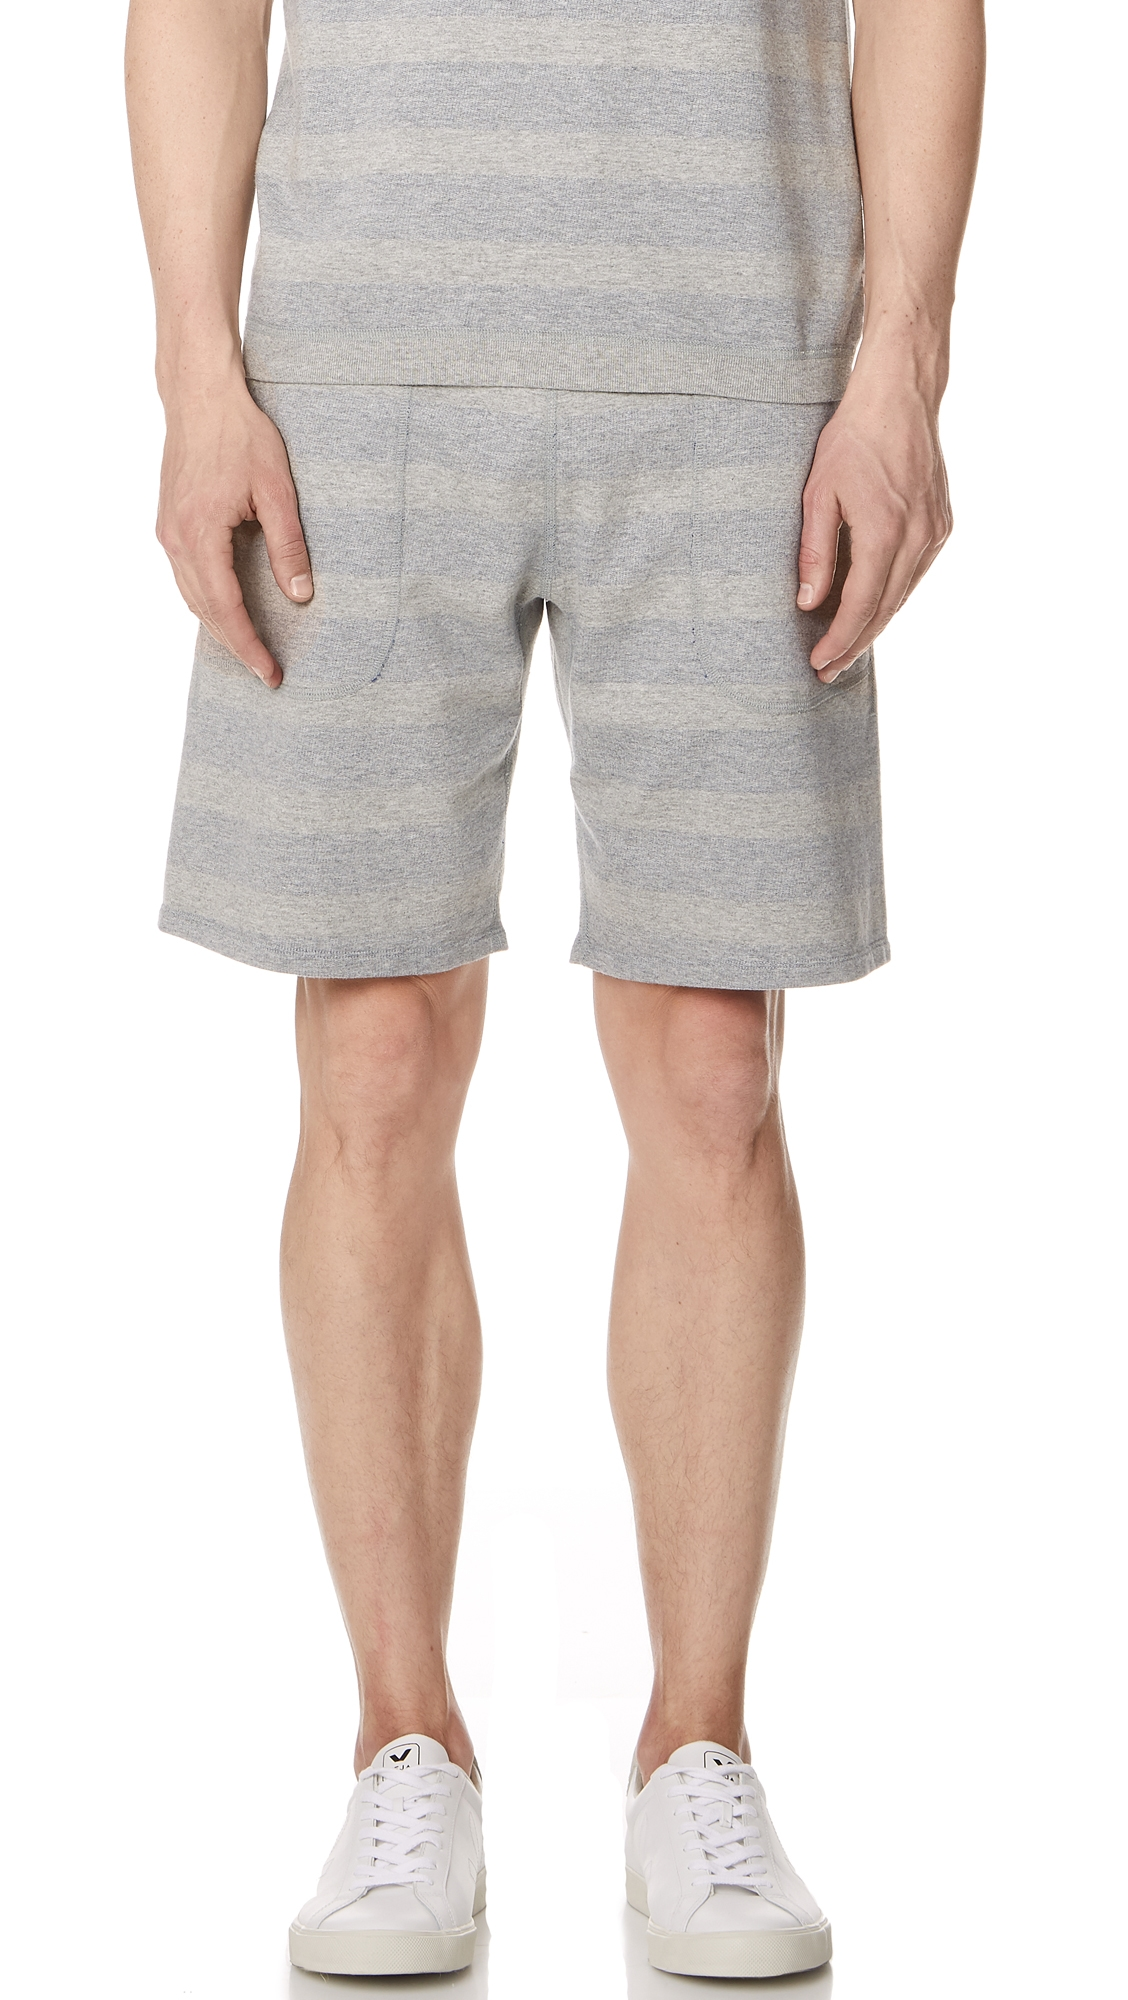 cfb636ffd297 REIGNING CHAMP SWEAT SHORTS